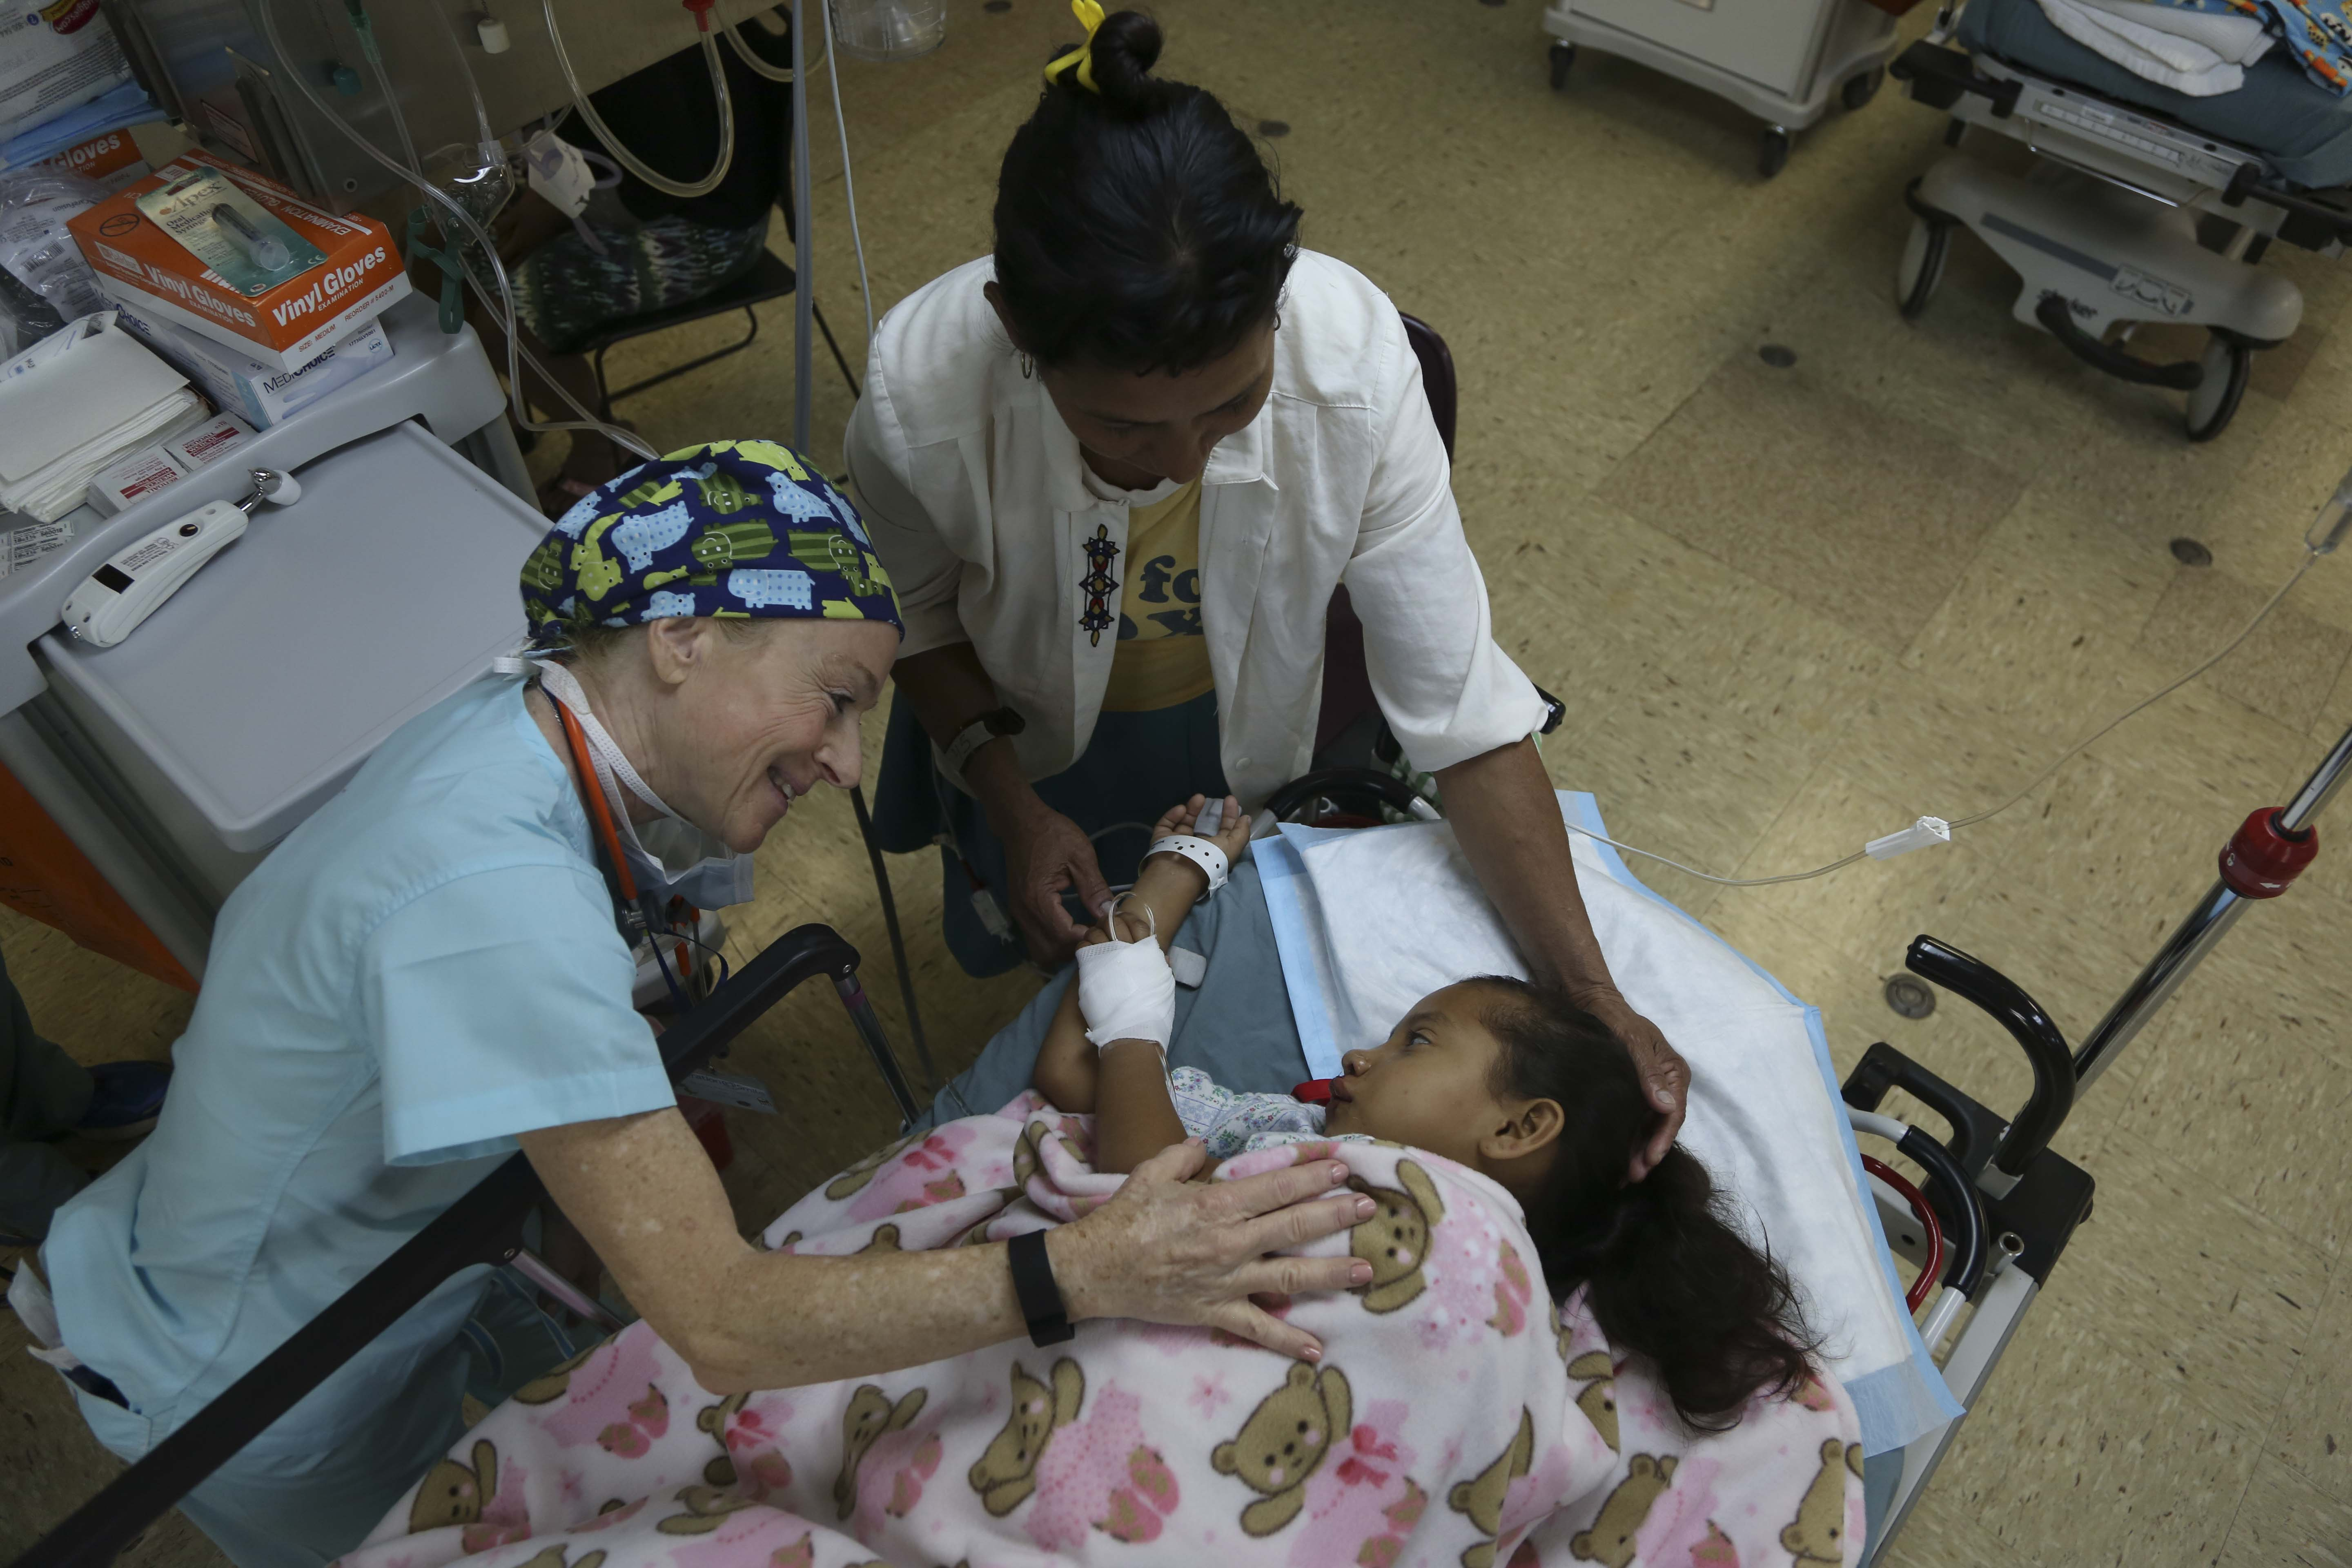 Dr. Judith Brill, a physician volunteering with the non-governmental organization Operation Smile, comforts a Nicaraguan patient in the post-operating room aboard USNS Comfort during Continuing Promise 2015.